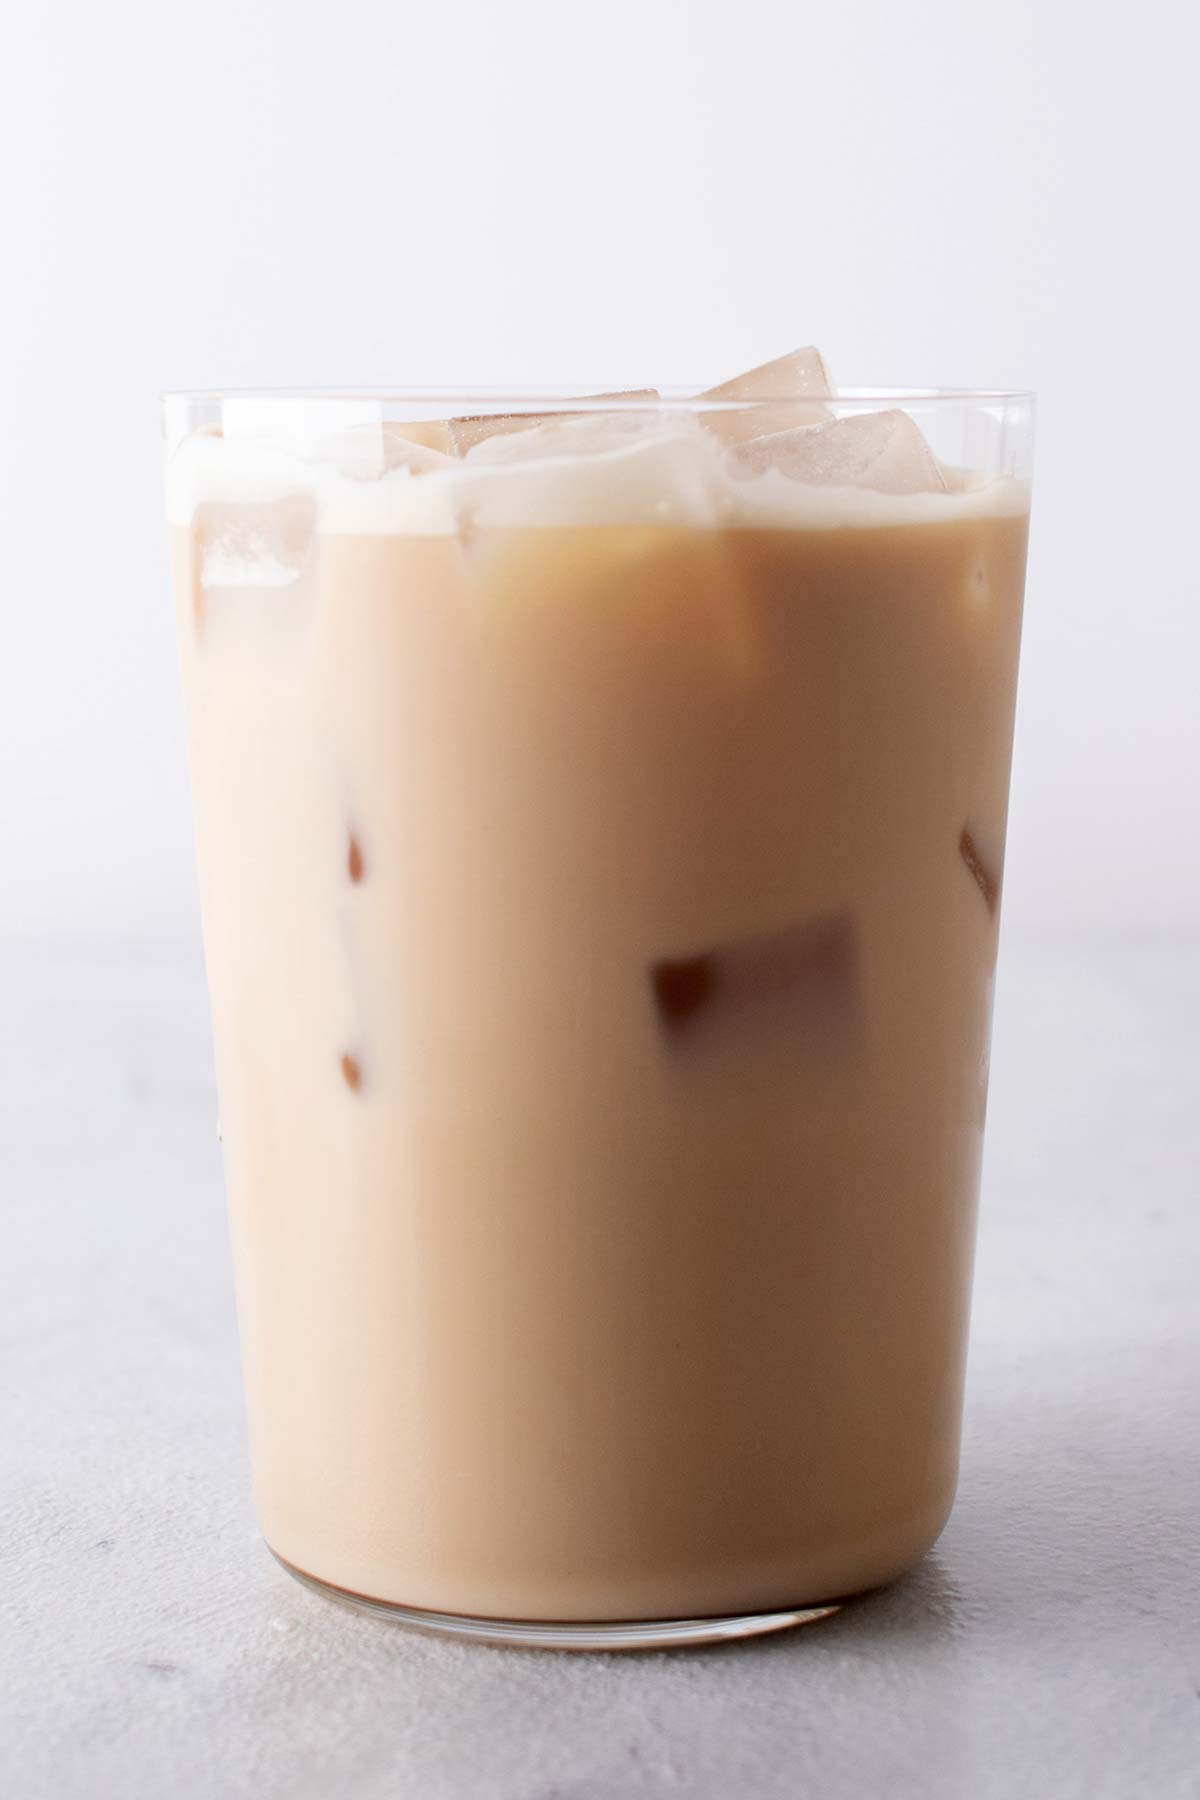 Tall glass with Iced Vanilla Latte.